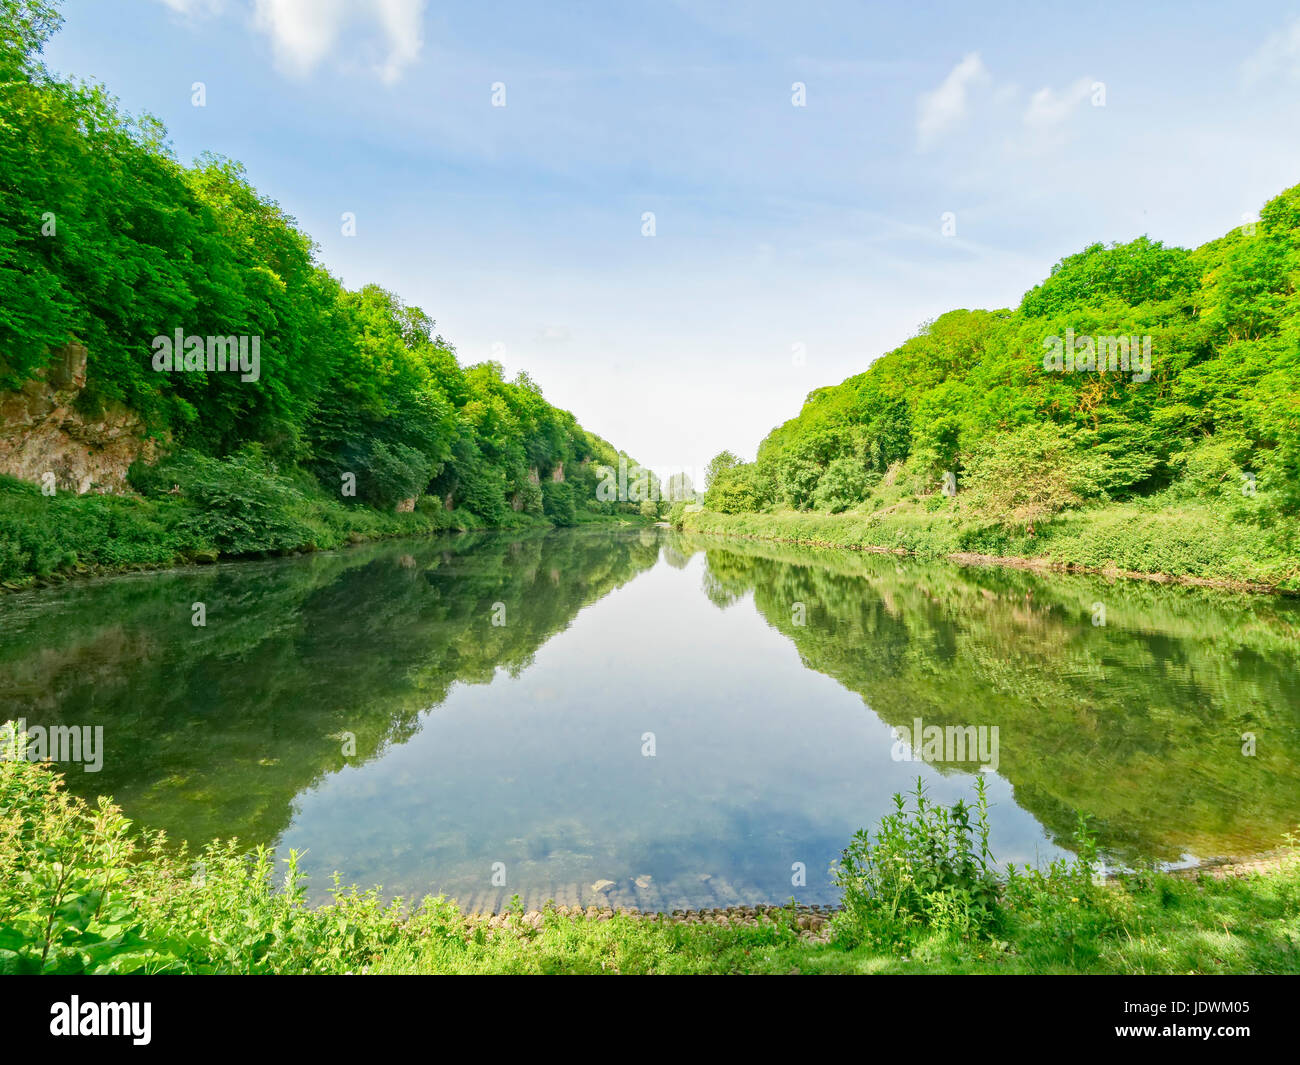 A long, narrow lake fringed by trees on a summers morning - Stock Image